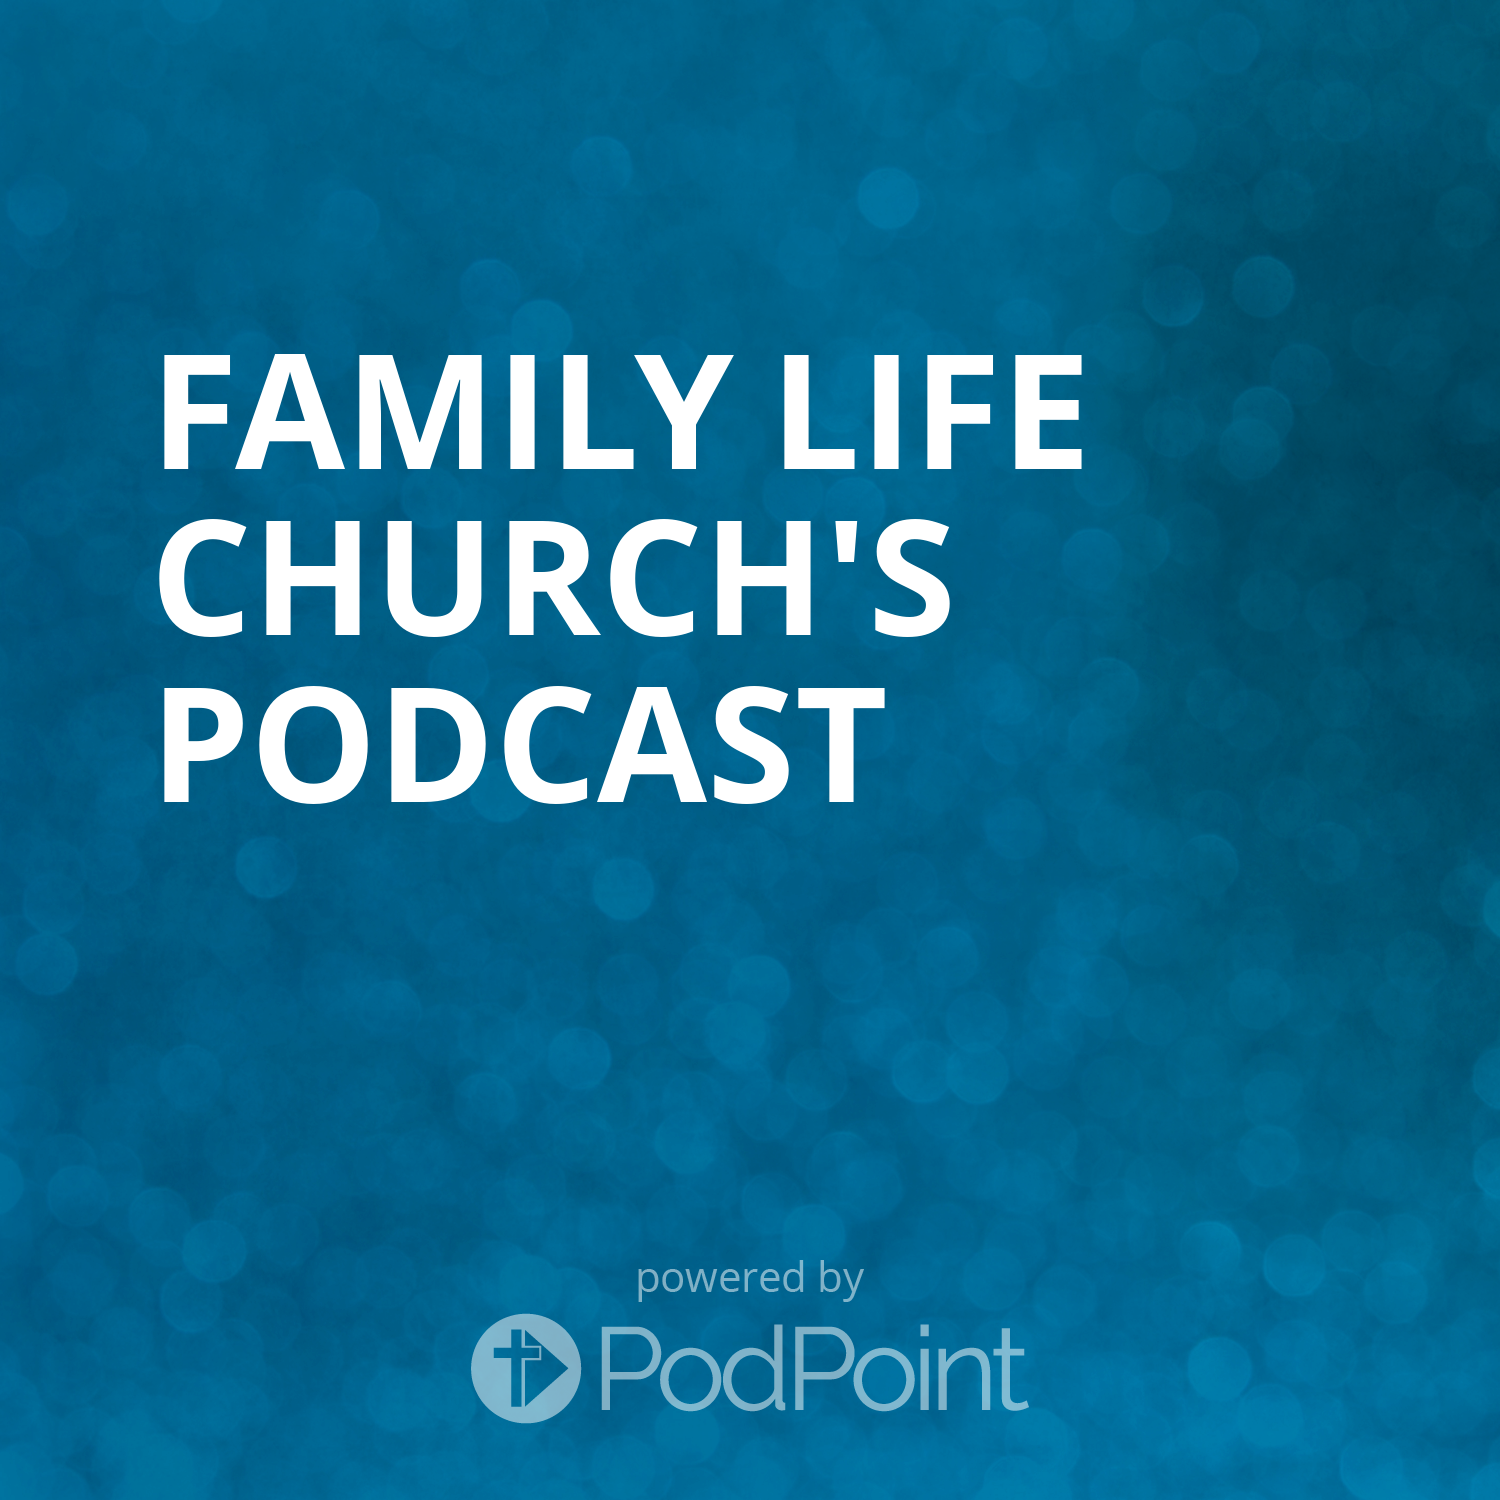 Family Life Church's Podcast